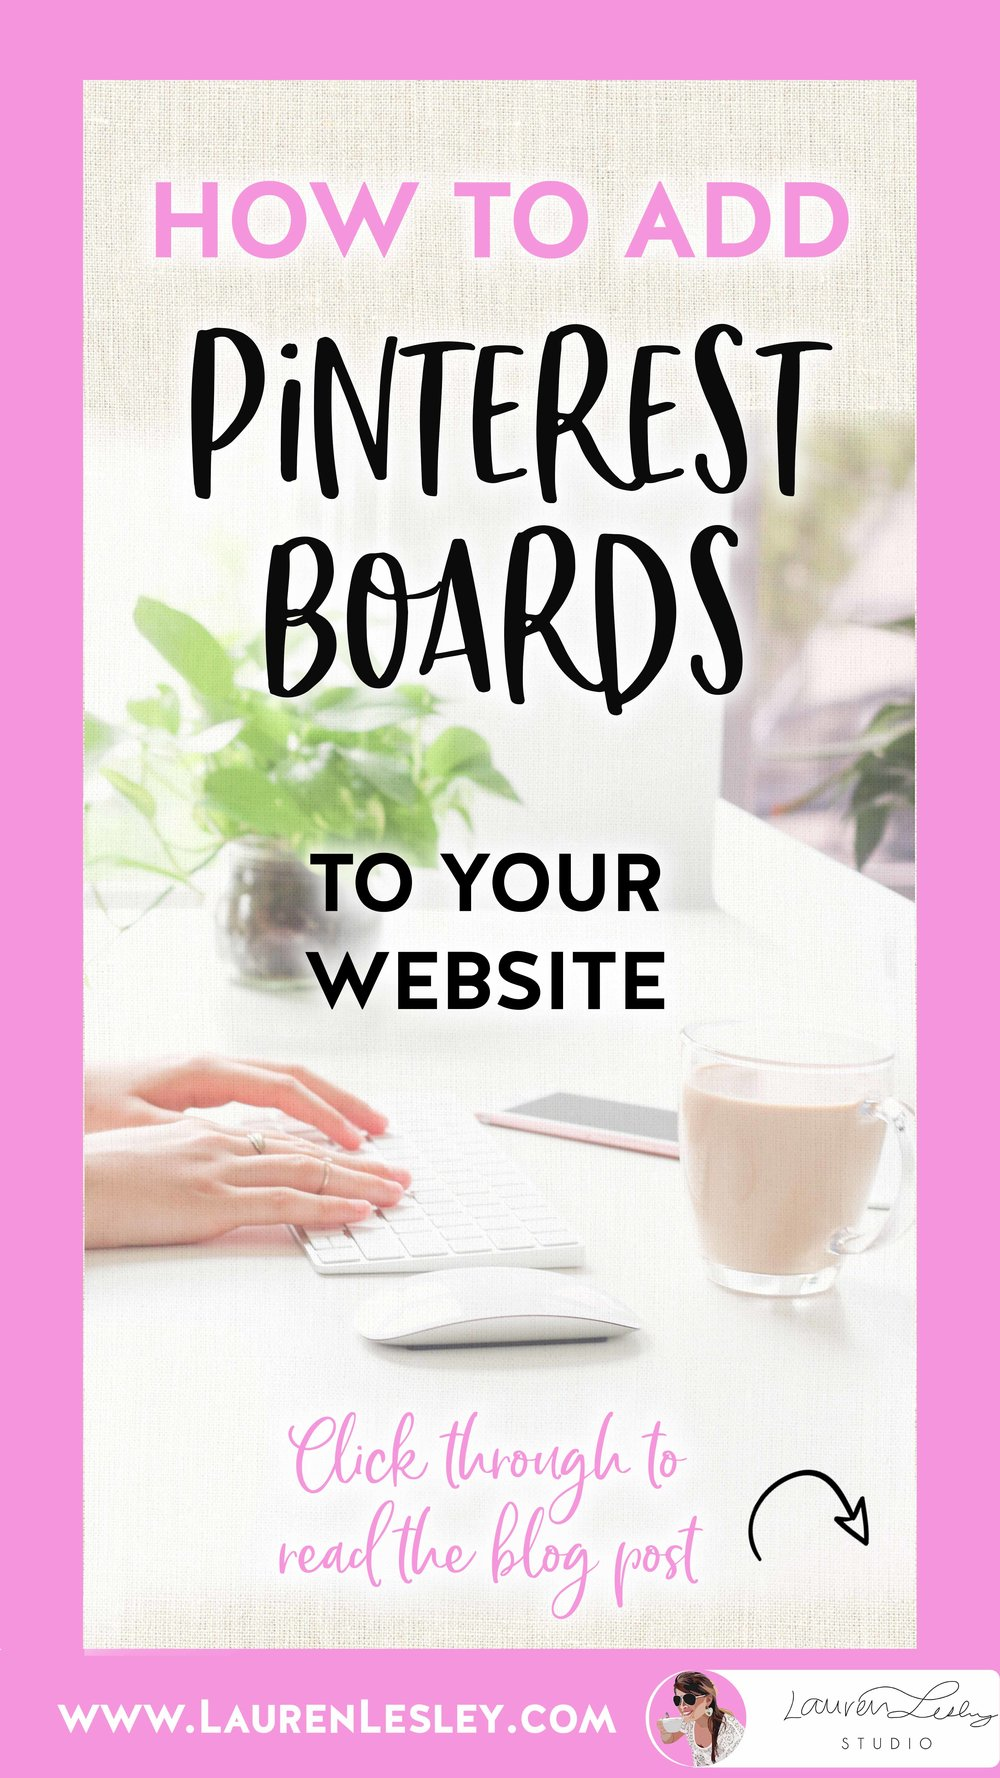 Add a Pinterest Widget to Your Website - And your followers can get the latest trends in real time!